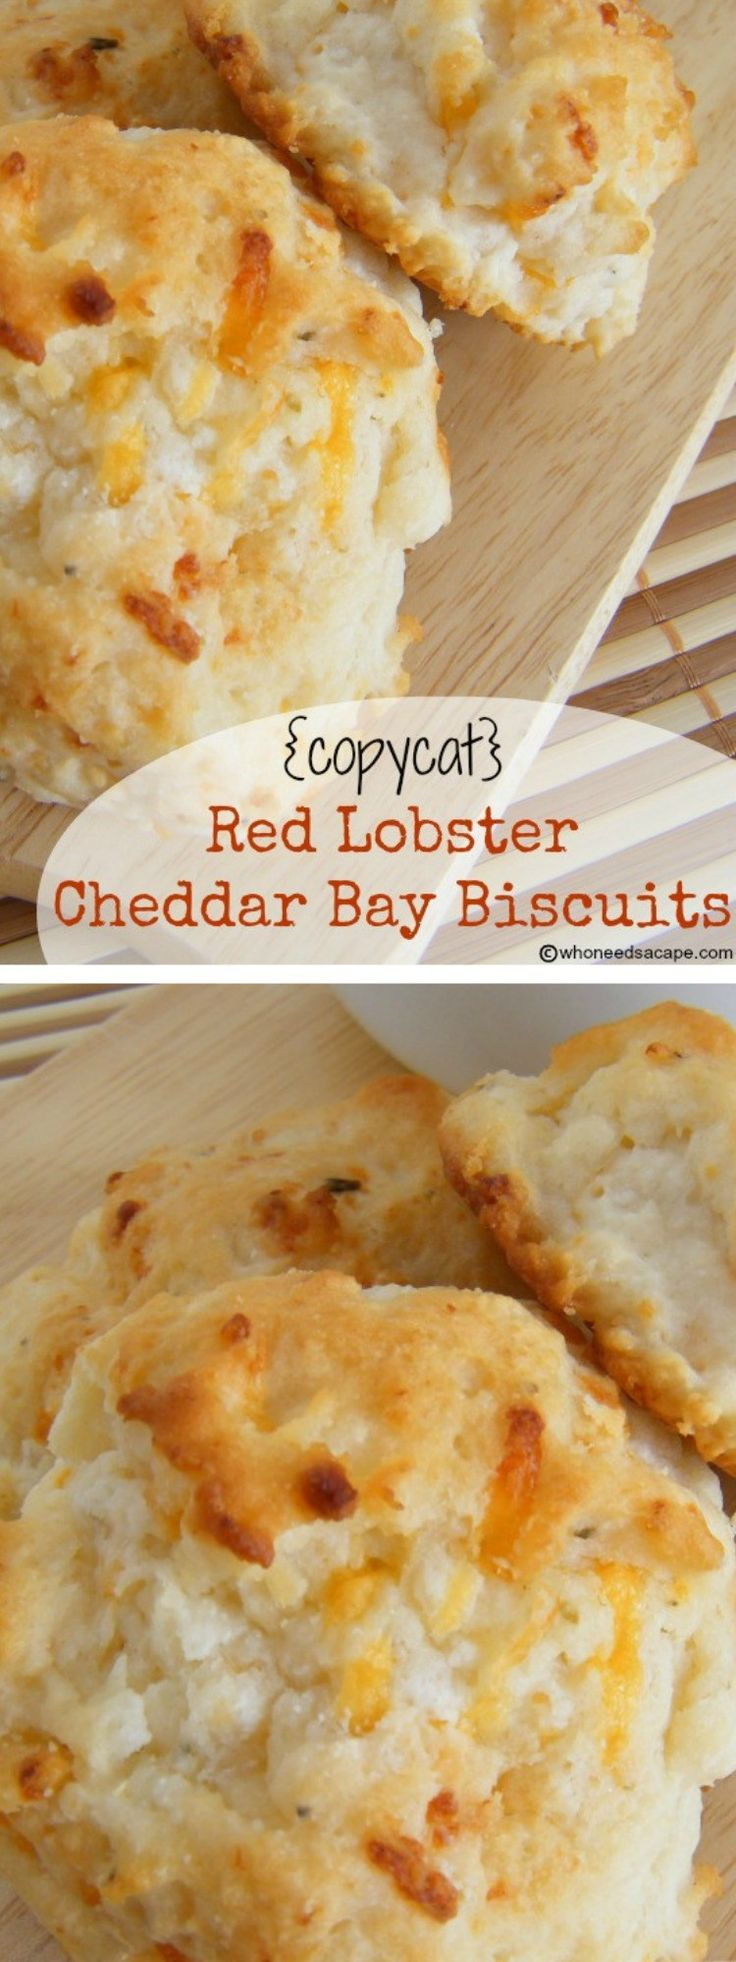 Make these famous restaurant biscuits at home! {copycat} Red Lobster Cheddar Bay Biscuits are unbelievably easy to prepare and oh so good! | Who Needs A Cape? {pinned over 4.5K times}